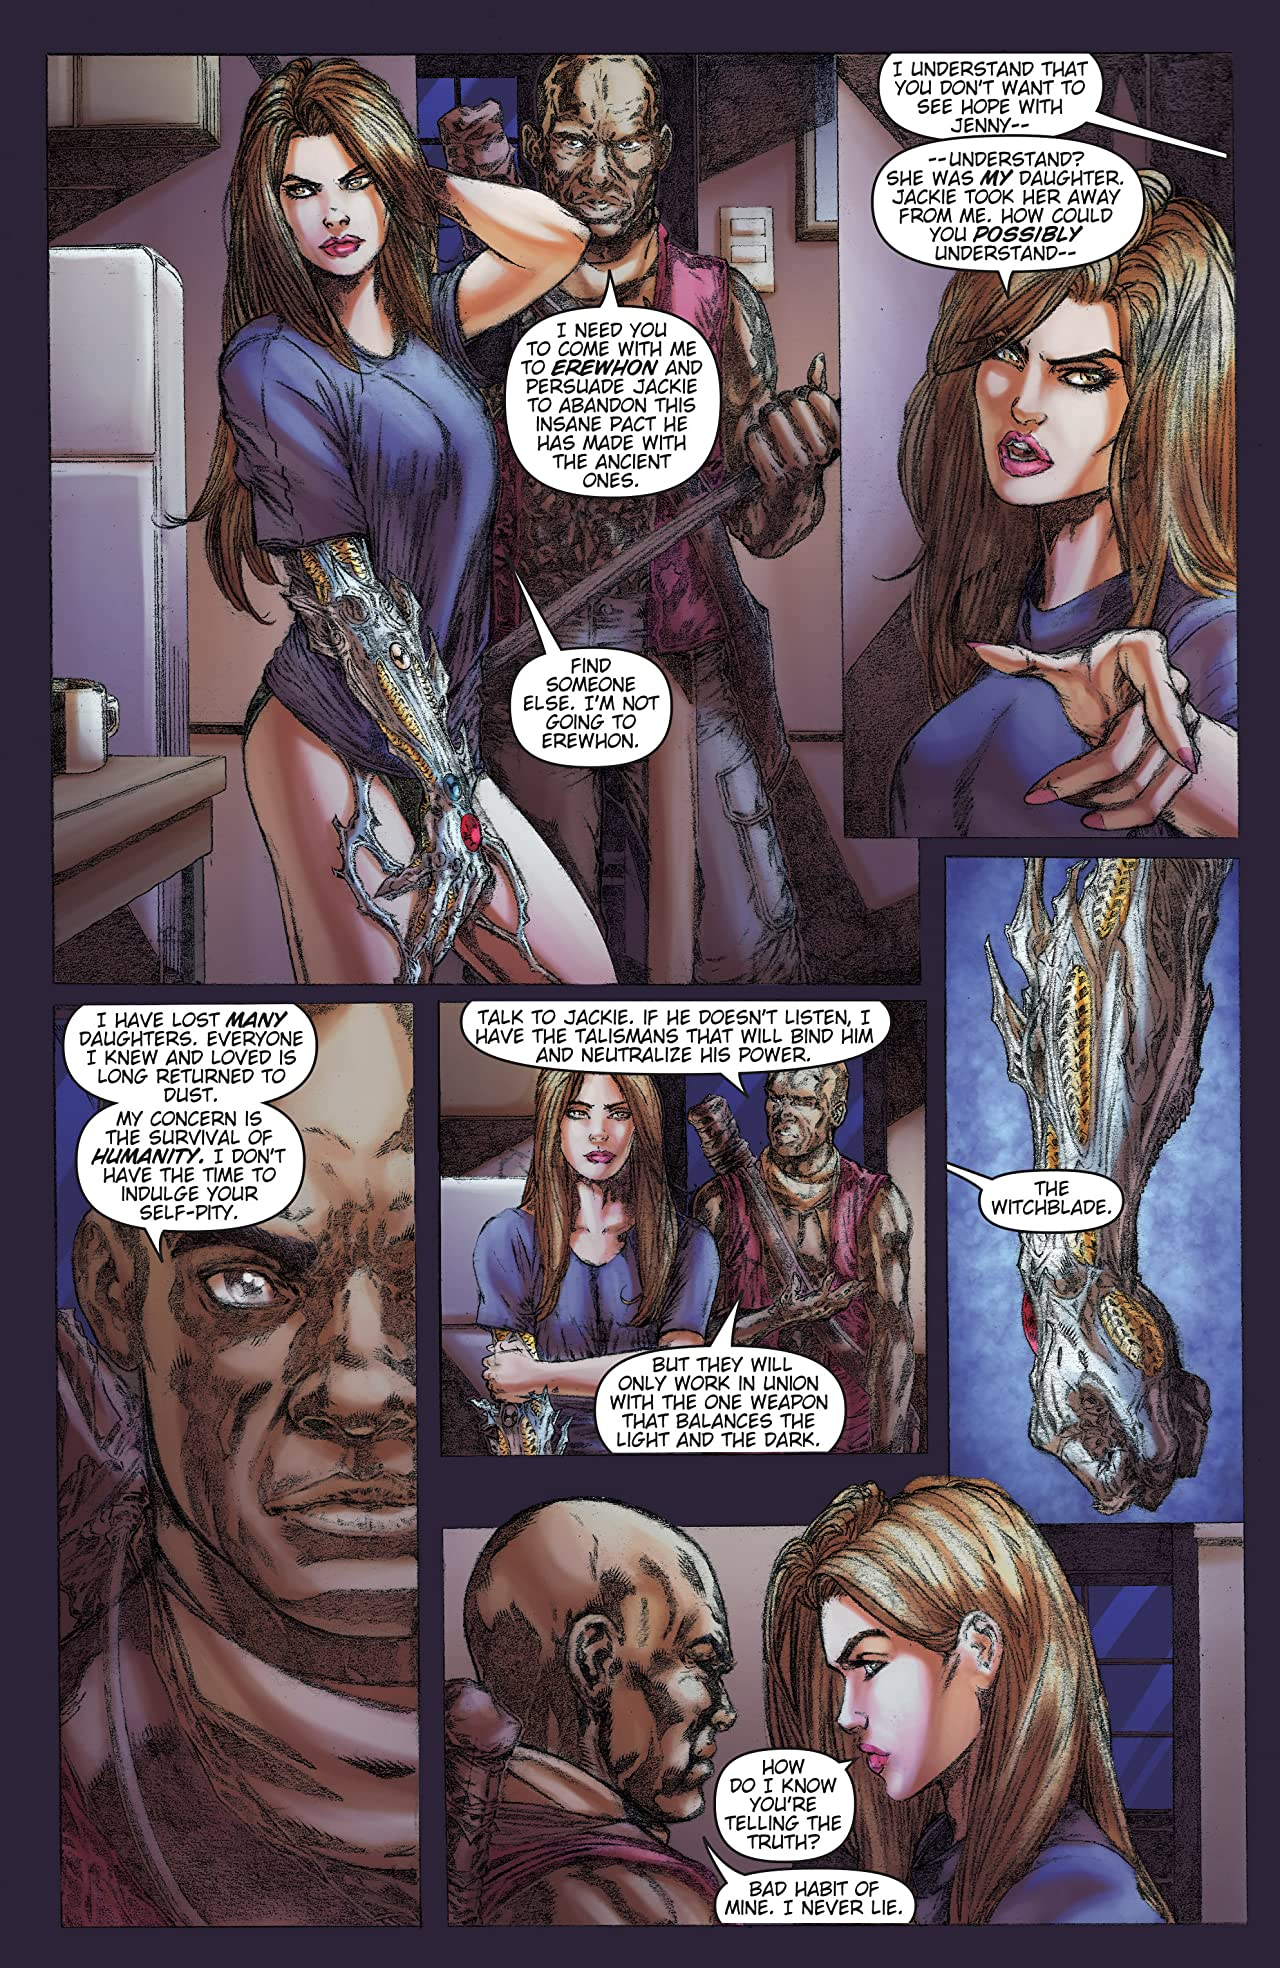 Witchblade: Borne Again Vol. 3